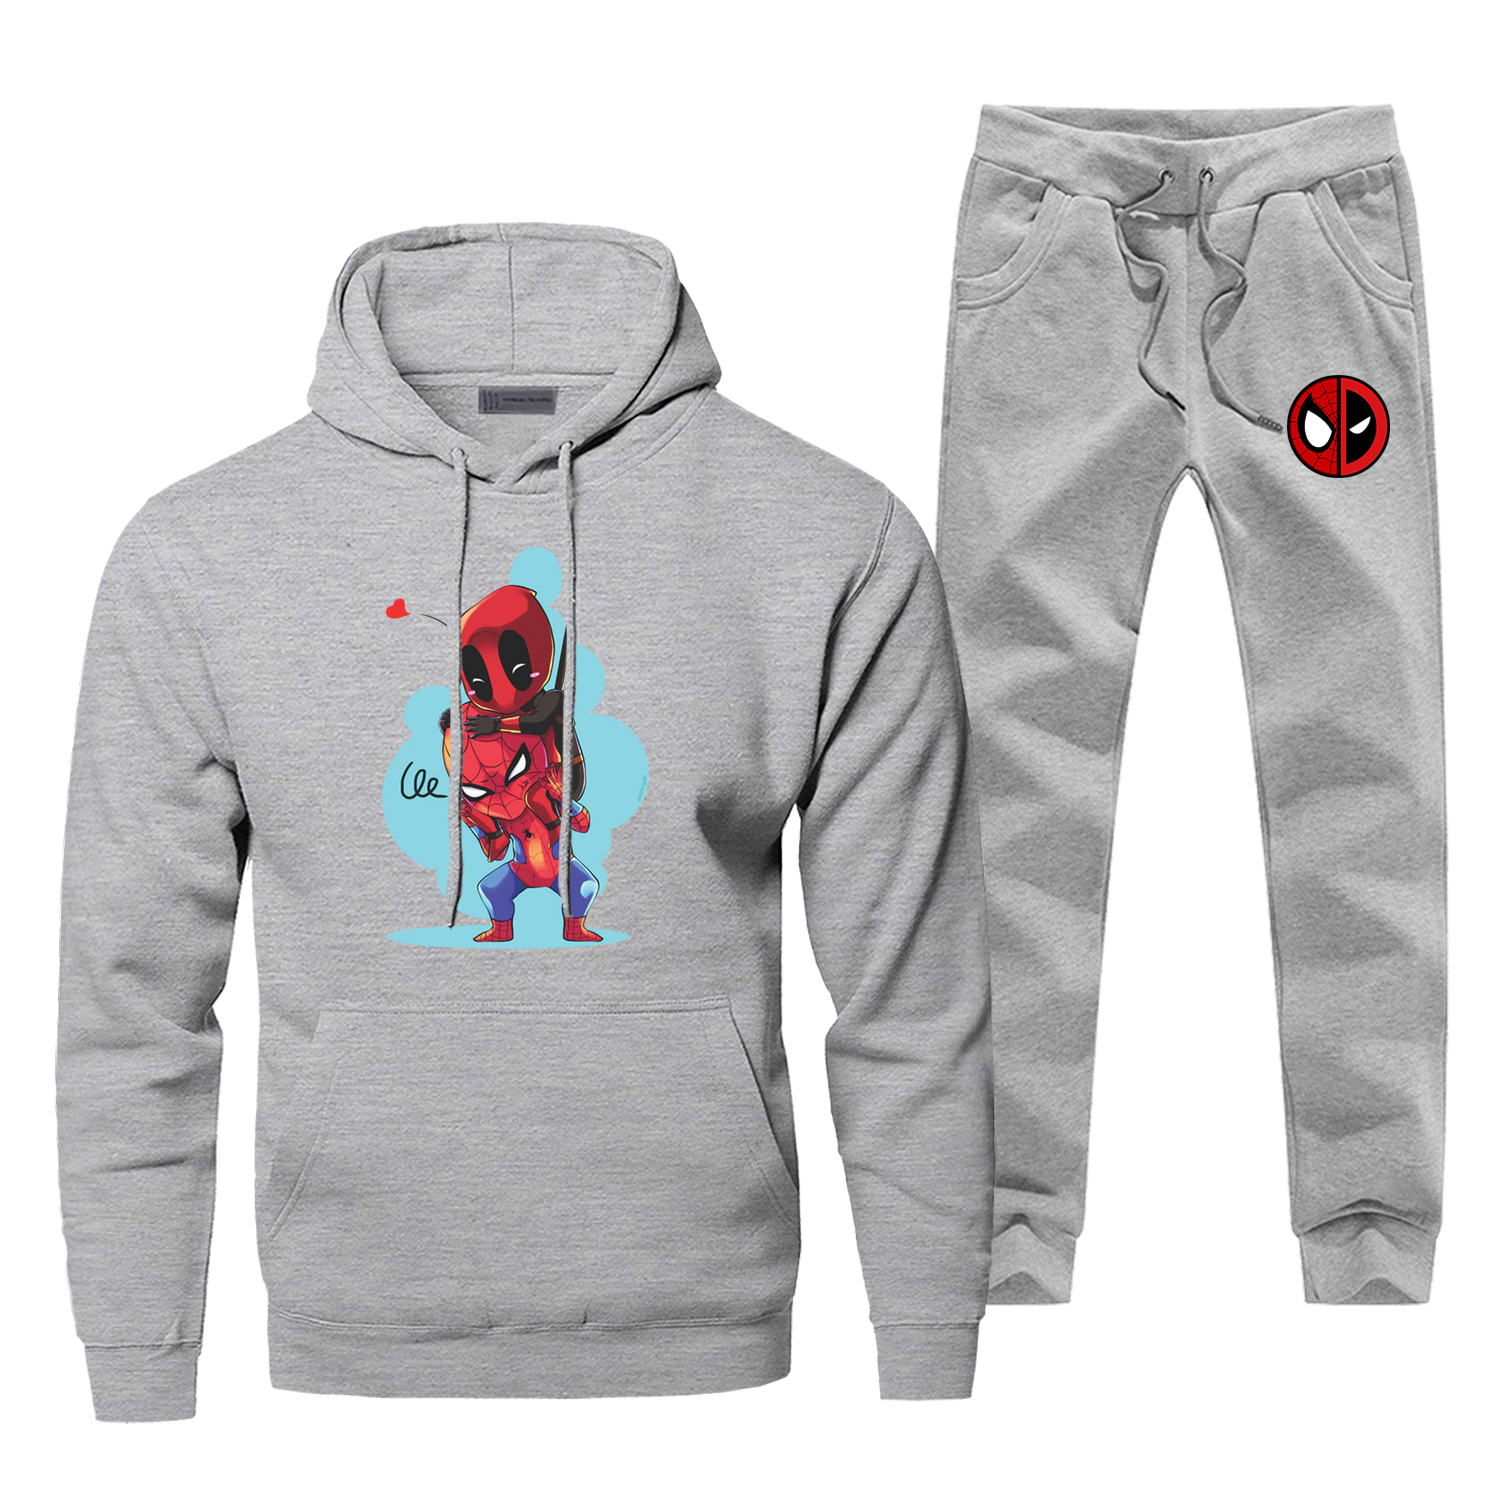 Deadpool Spider Hoodies Pants Set Men Sets Peter Parker Superhero Suit Hoody Pant Sweatshirt Sweatpants Pullover 2 PCS Tracksuit